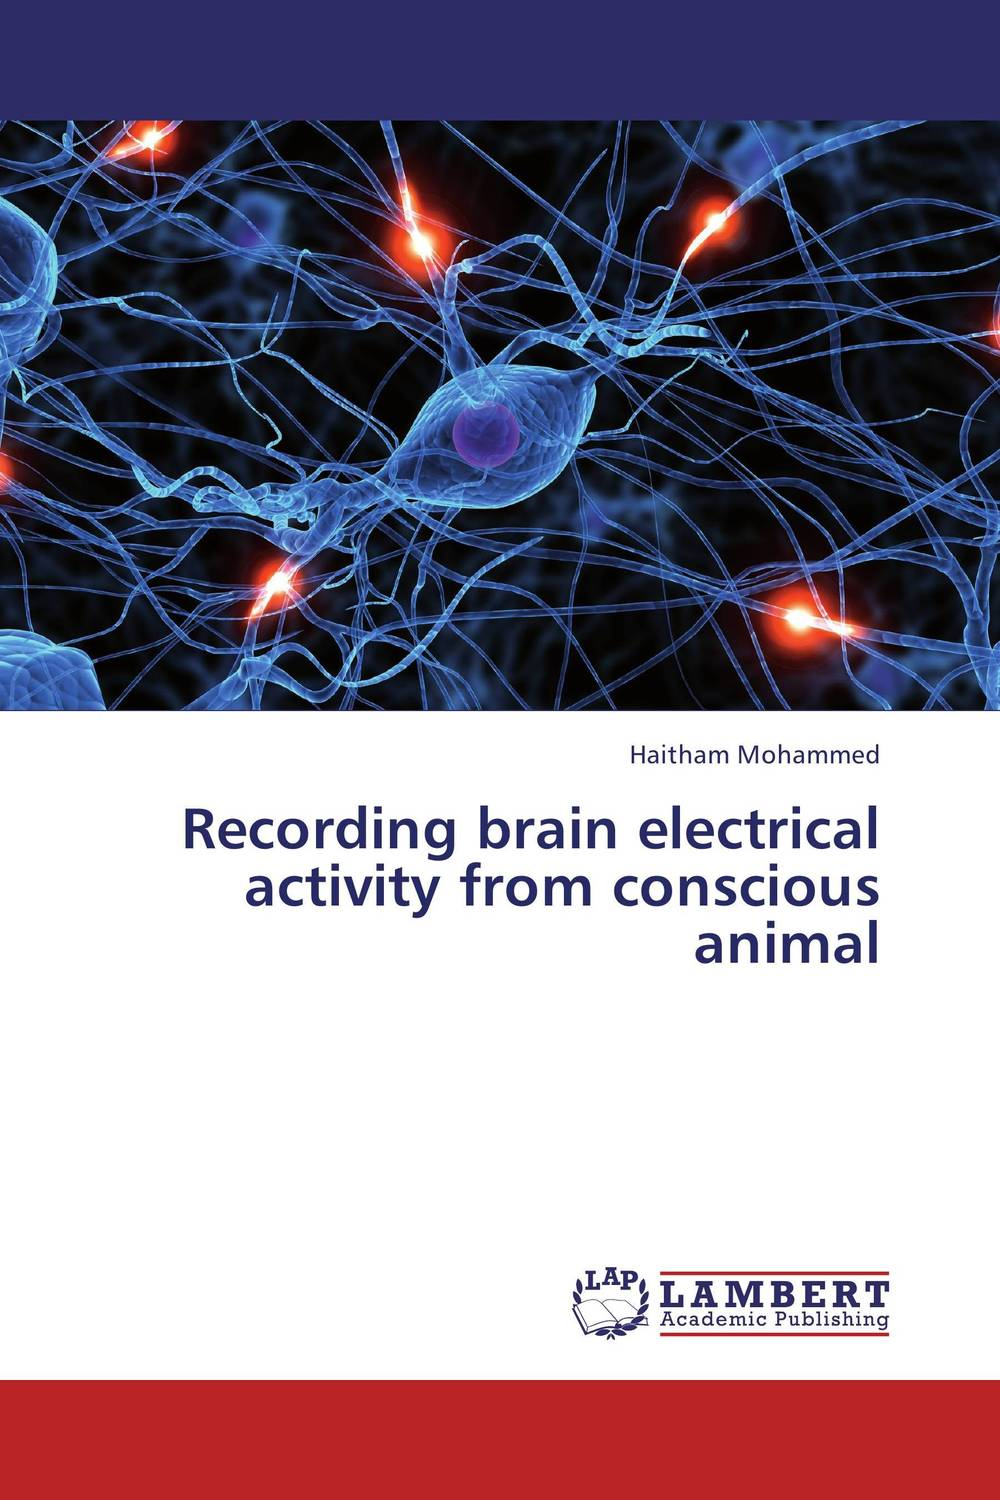 Recording brain electrical activity from conscious animal animal traction in the fadama